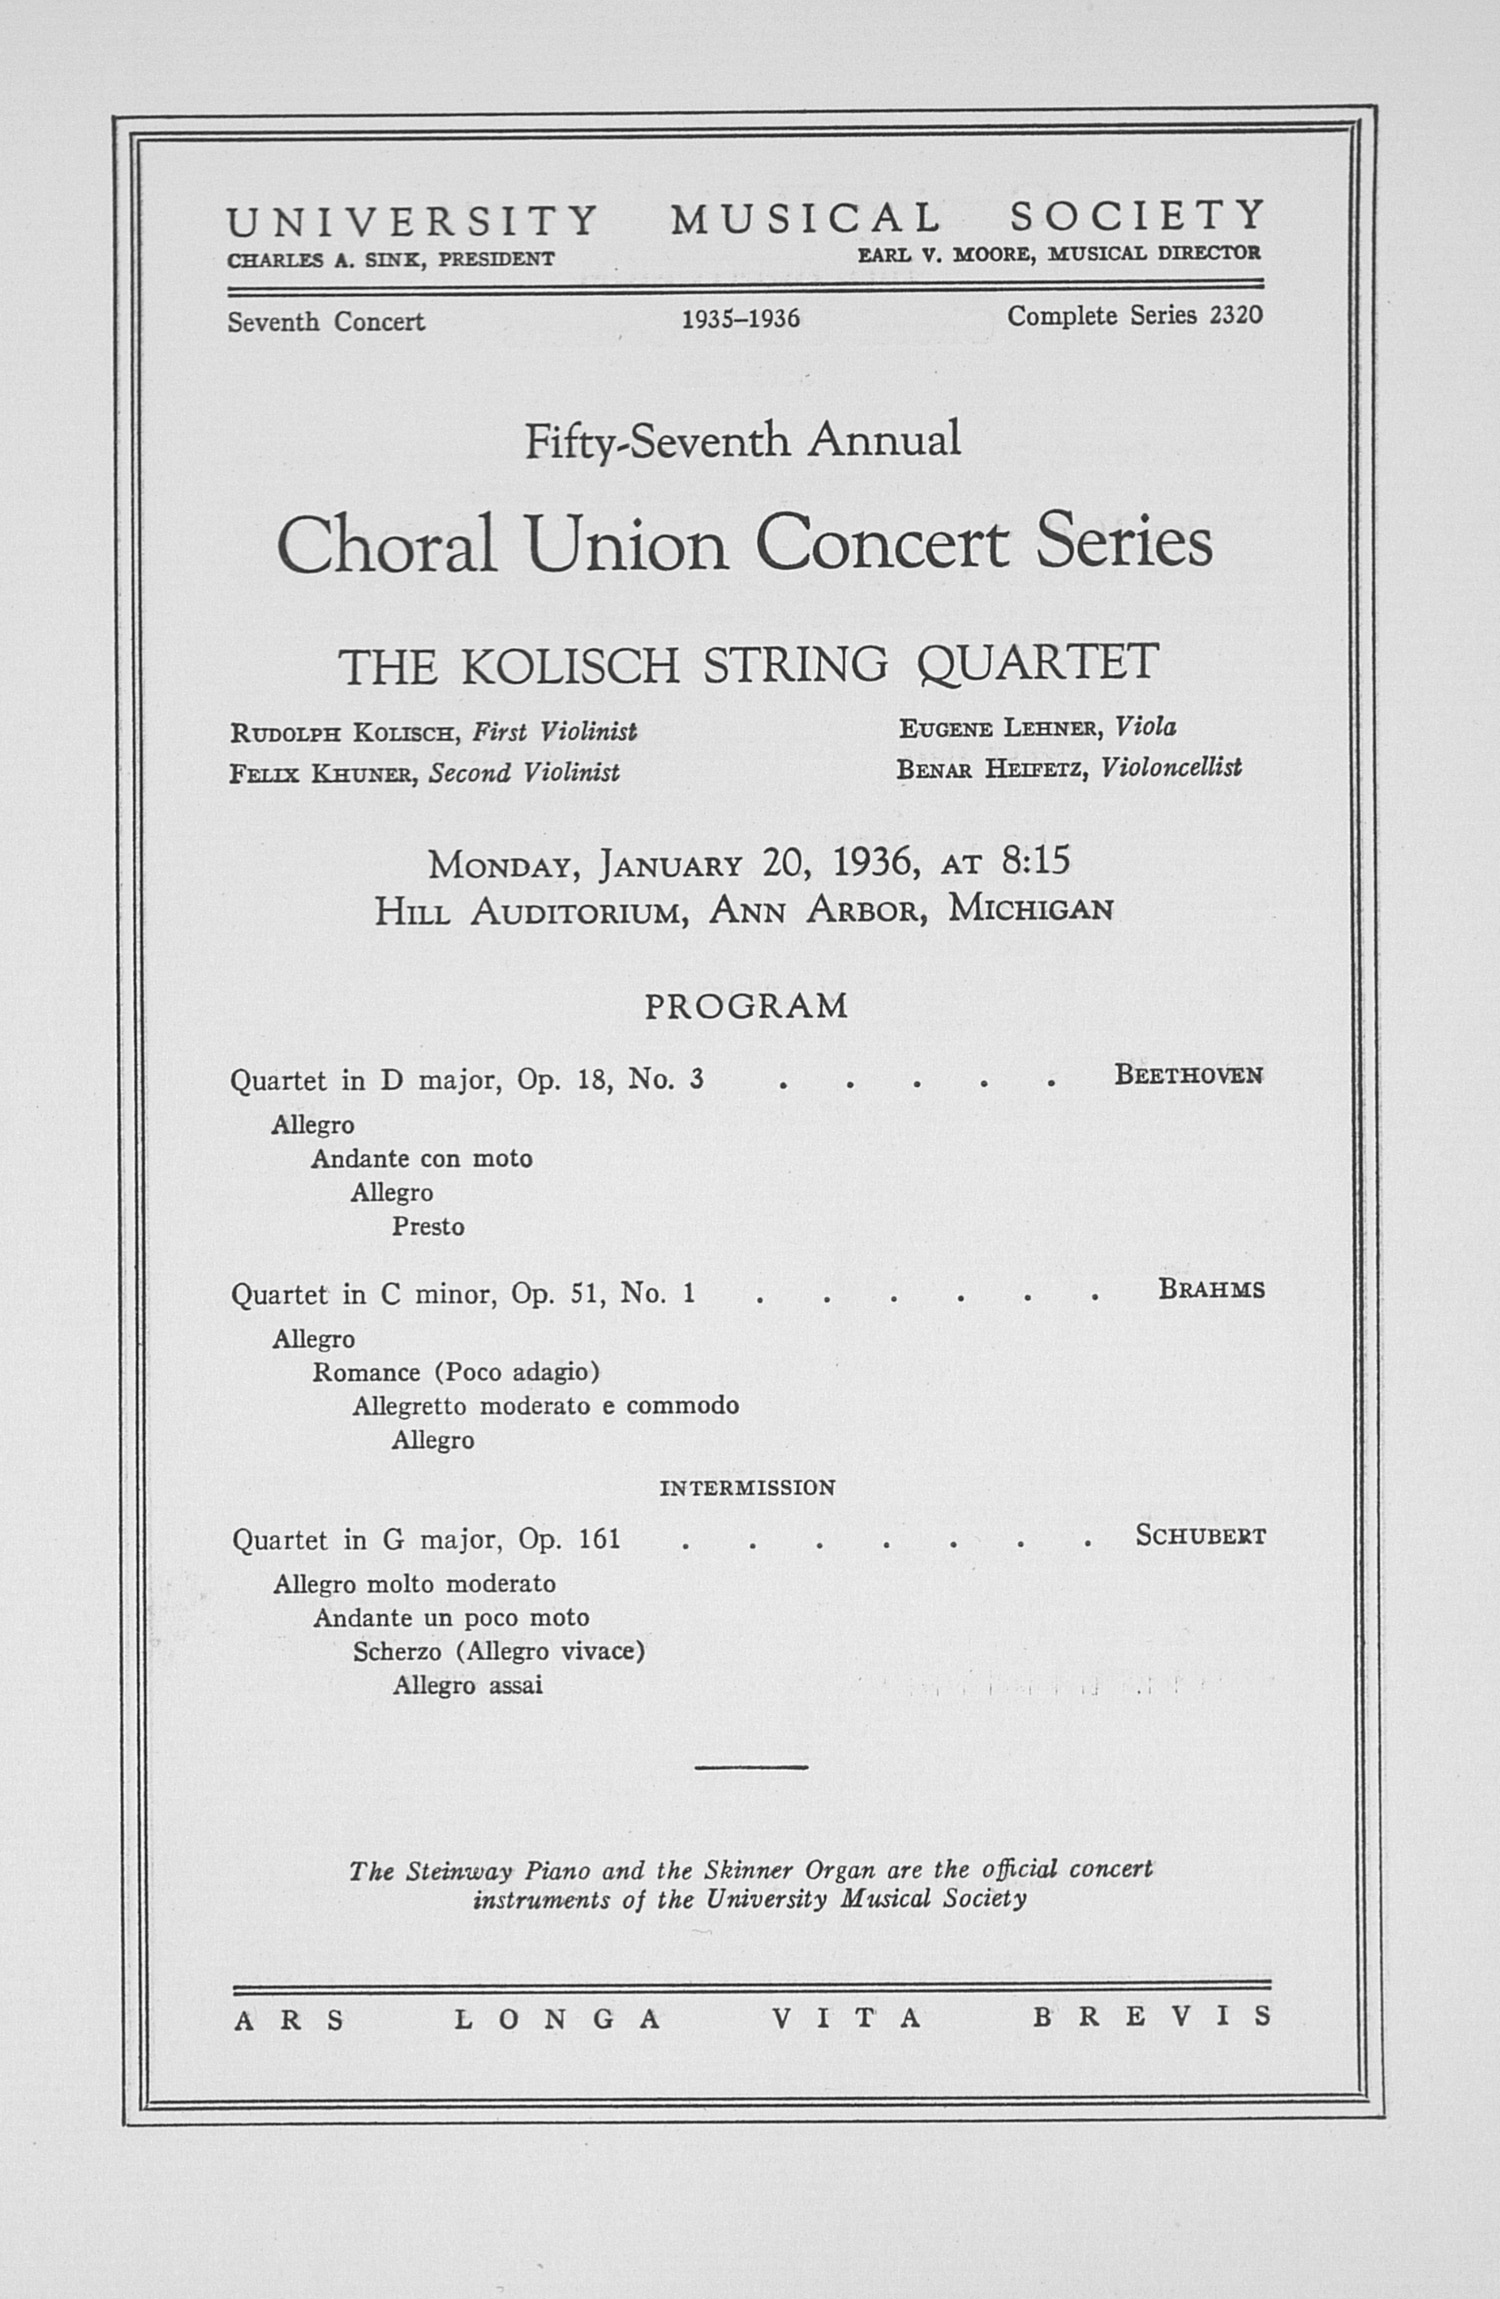 UMS Concert Program, January 20, 1936: Fifty-seventh Annual Choral Union Concert Series -- The Kolisch String Quartet image